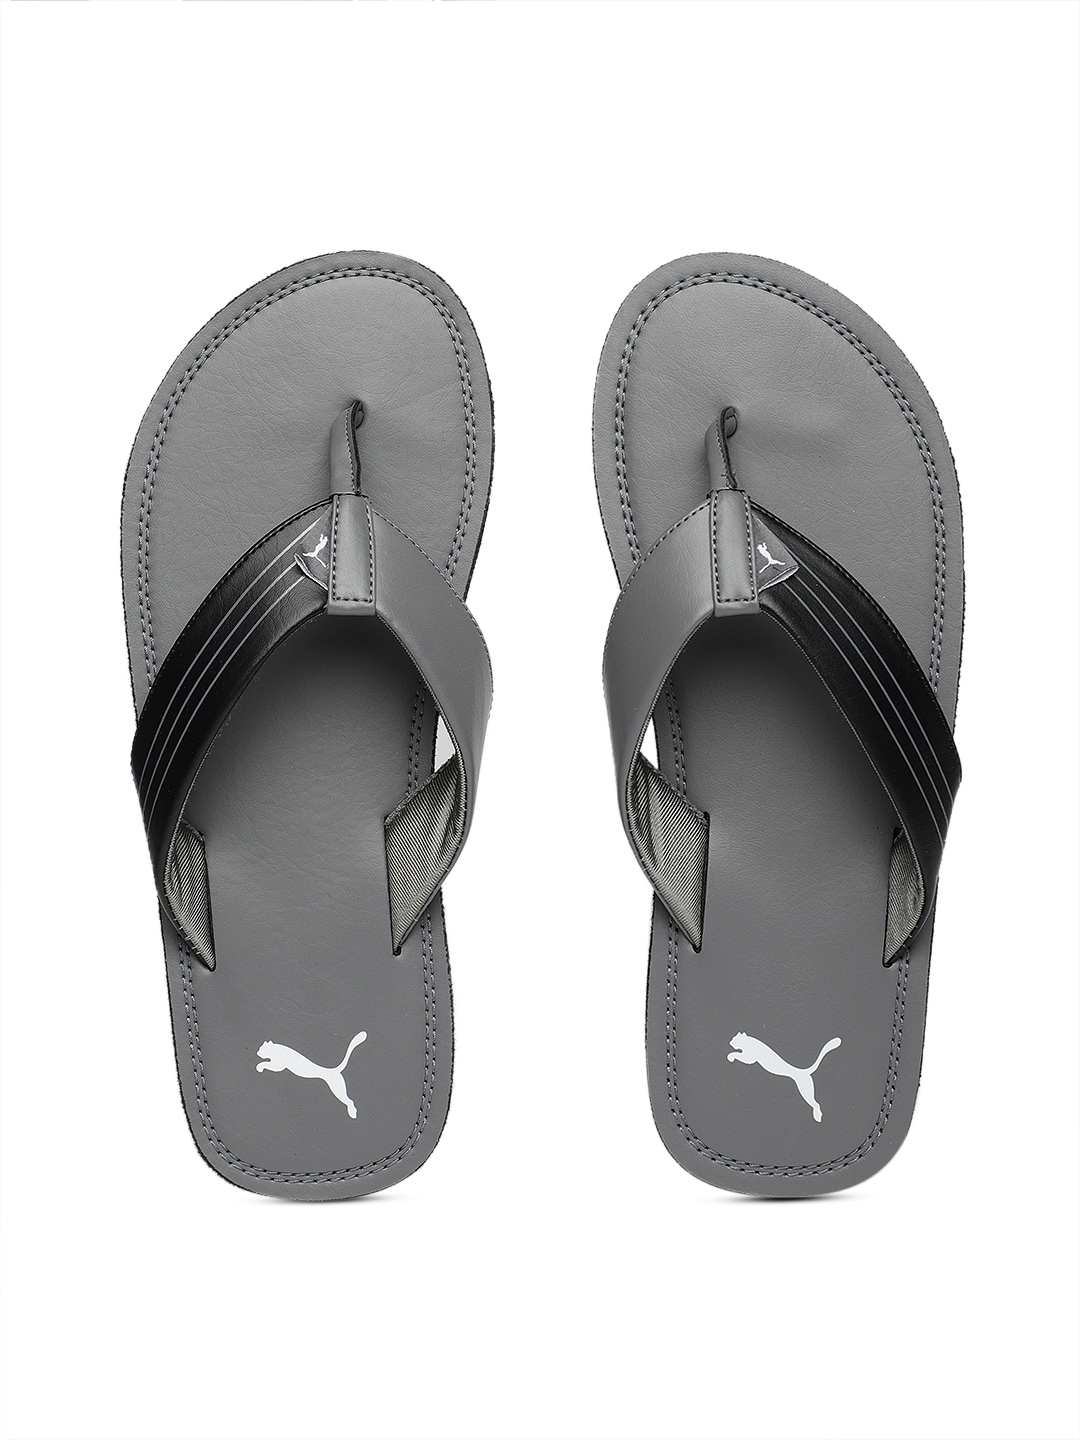 940e755060c6 Puma Skipper Flip Flops Sports Sandal - Buy Puma Skipper Flip Flops Sports Sandal  online in India